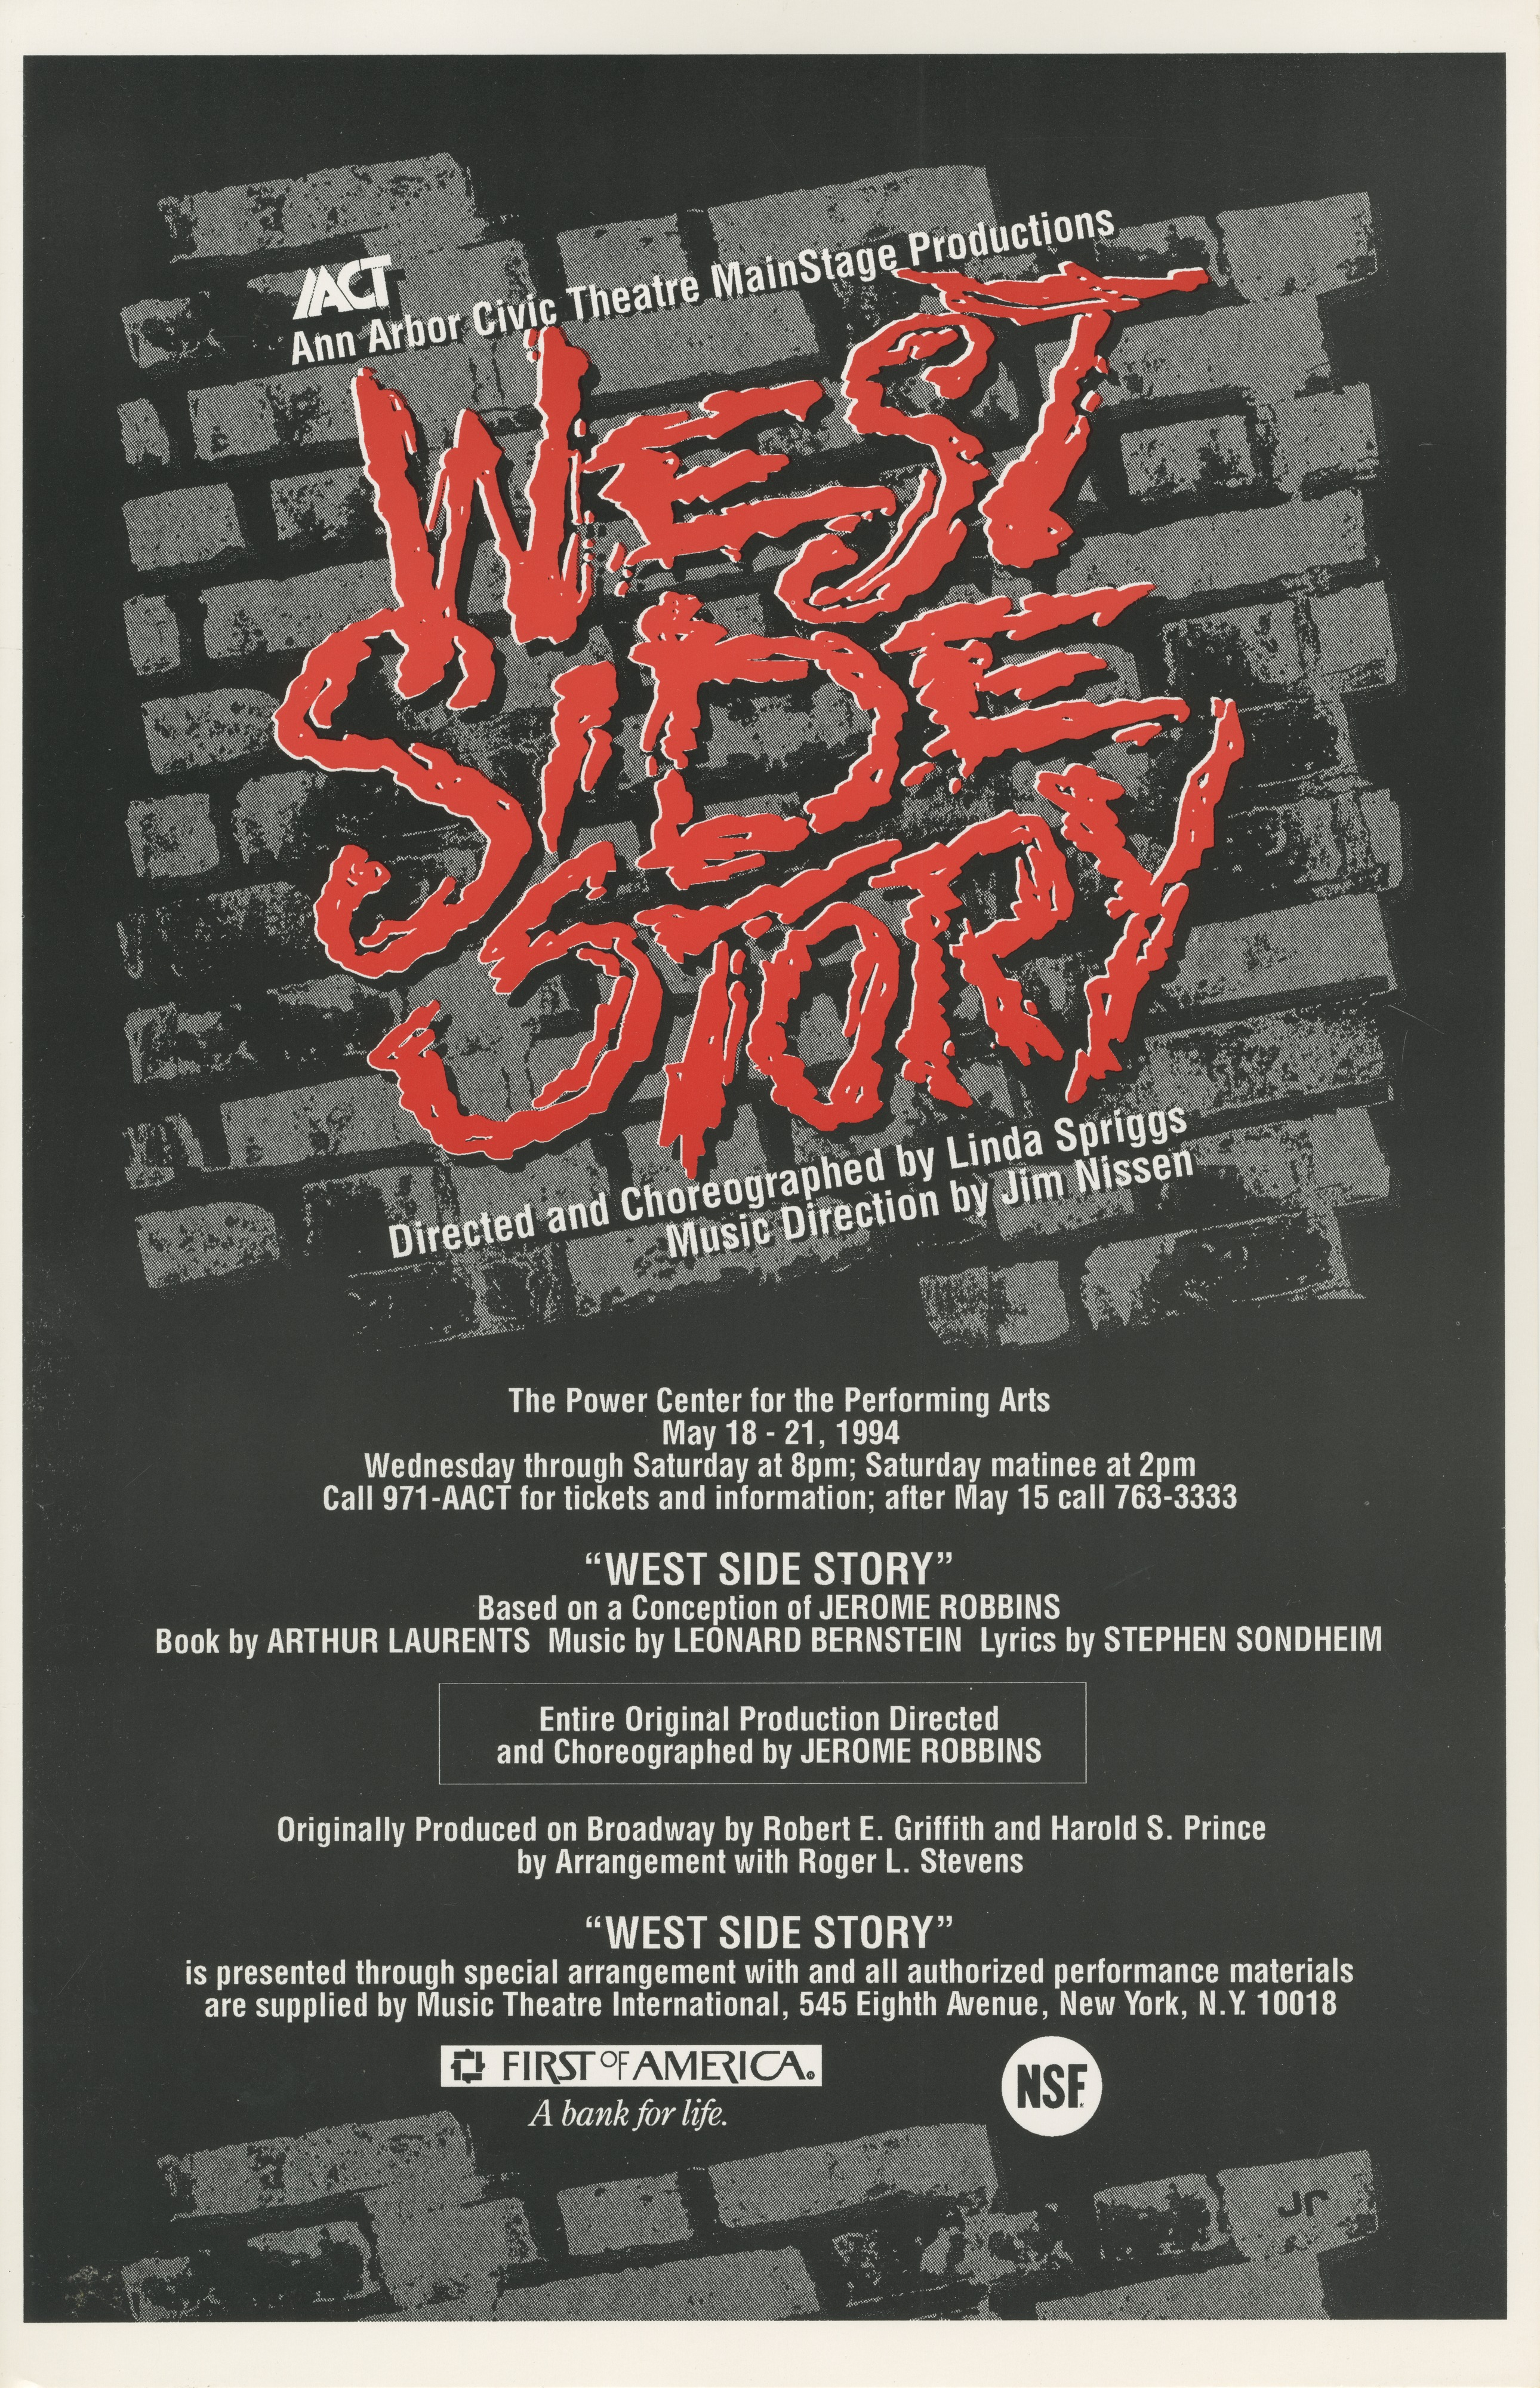 Ann Arbor Civic Theatre Poster: West Side Story image